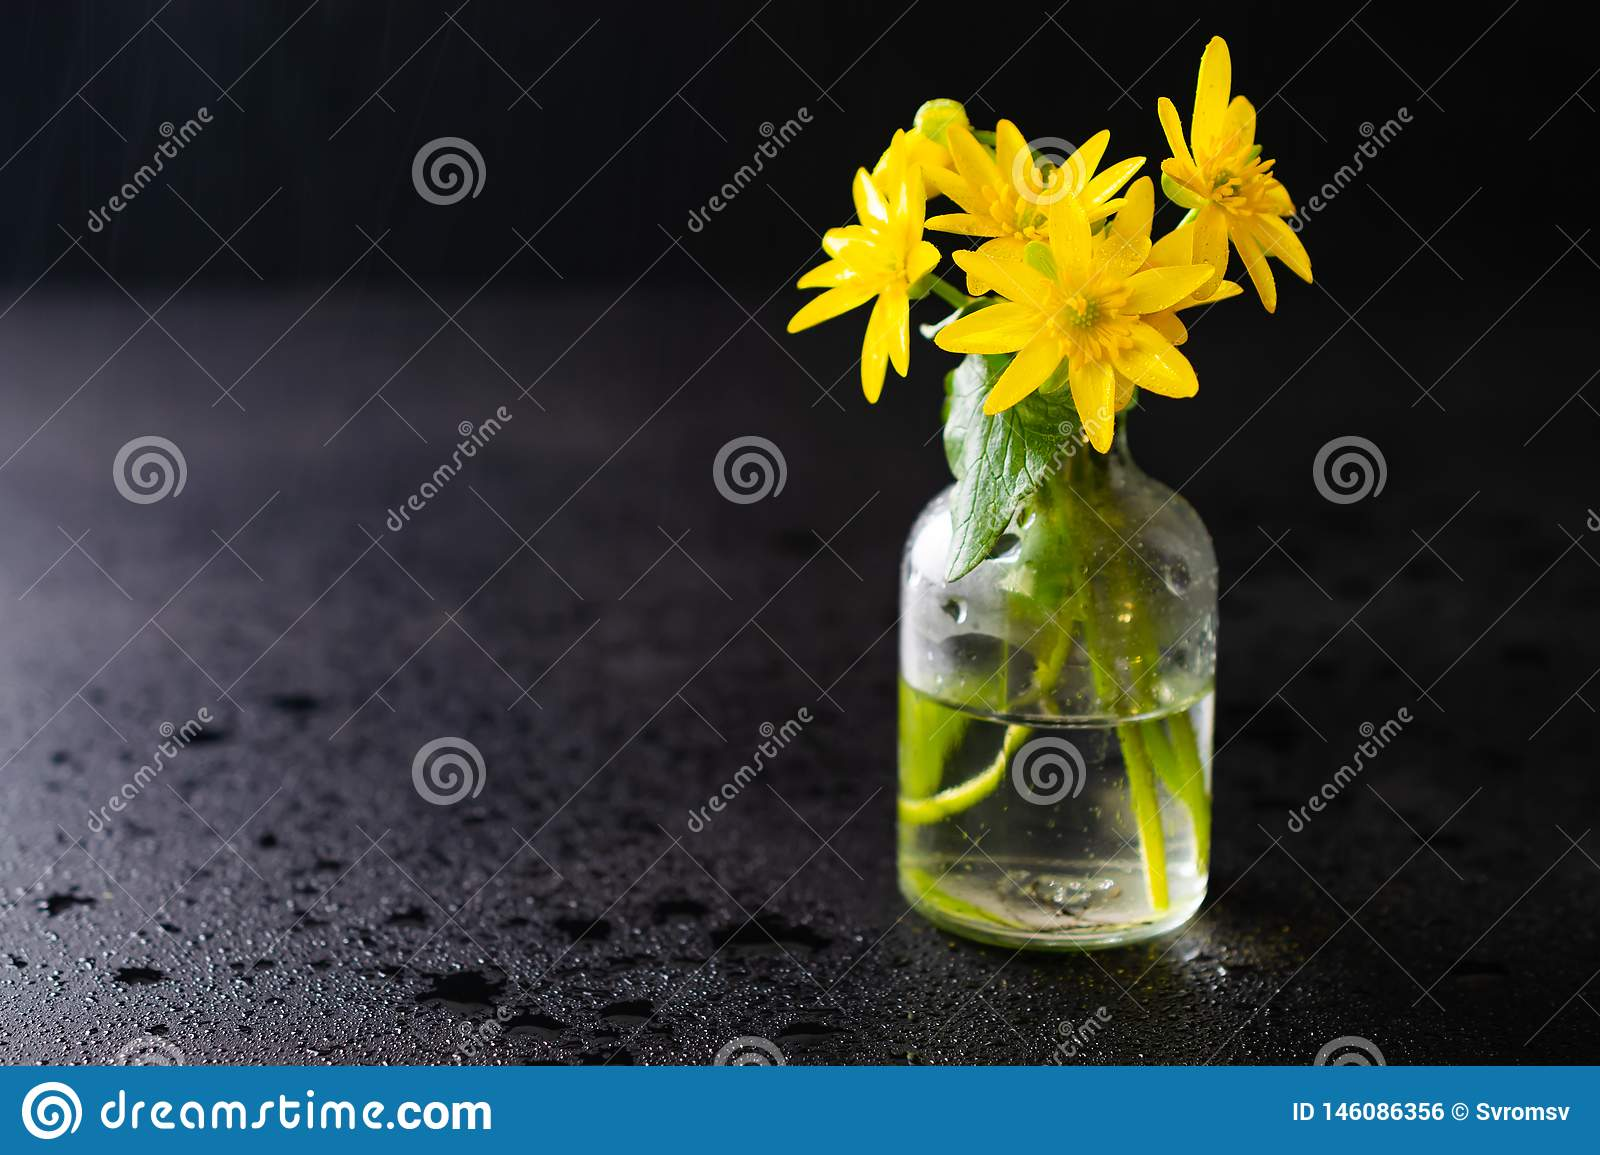 Fresh yellow spring flowers in a small glass bottle on a dark black background